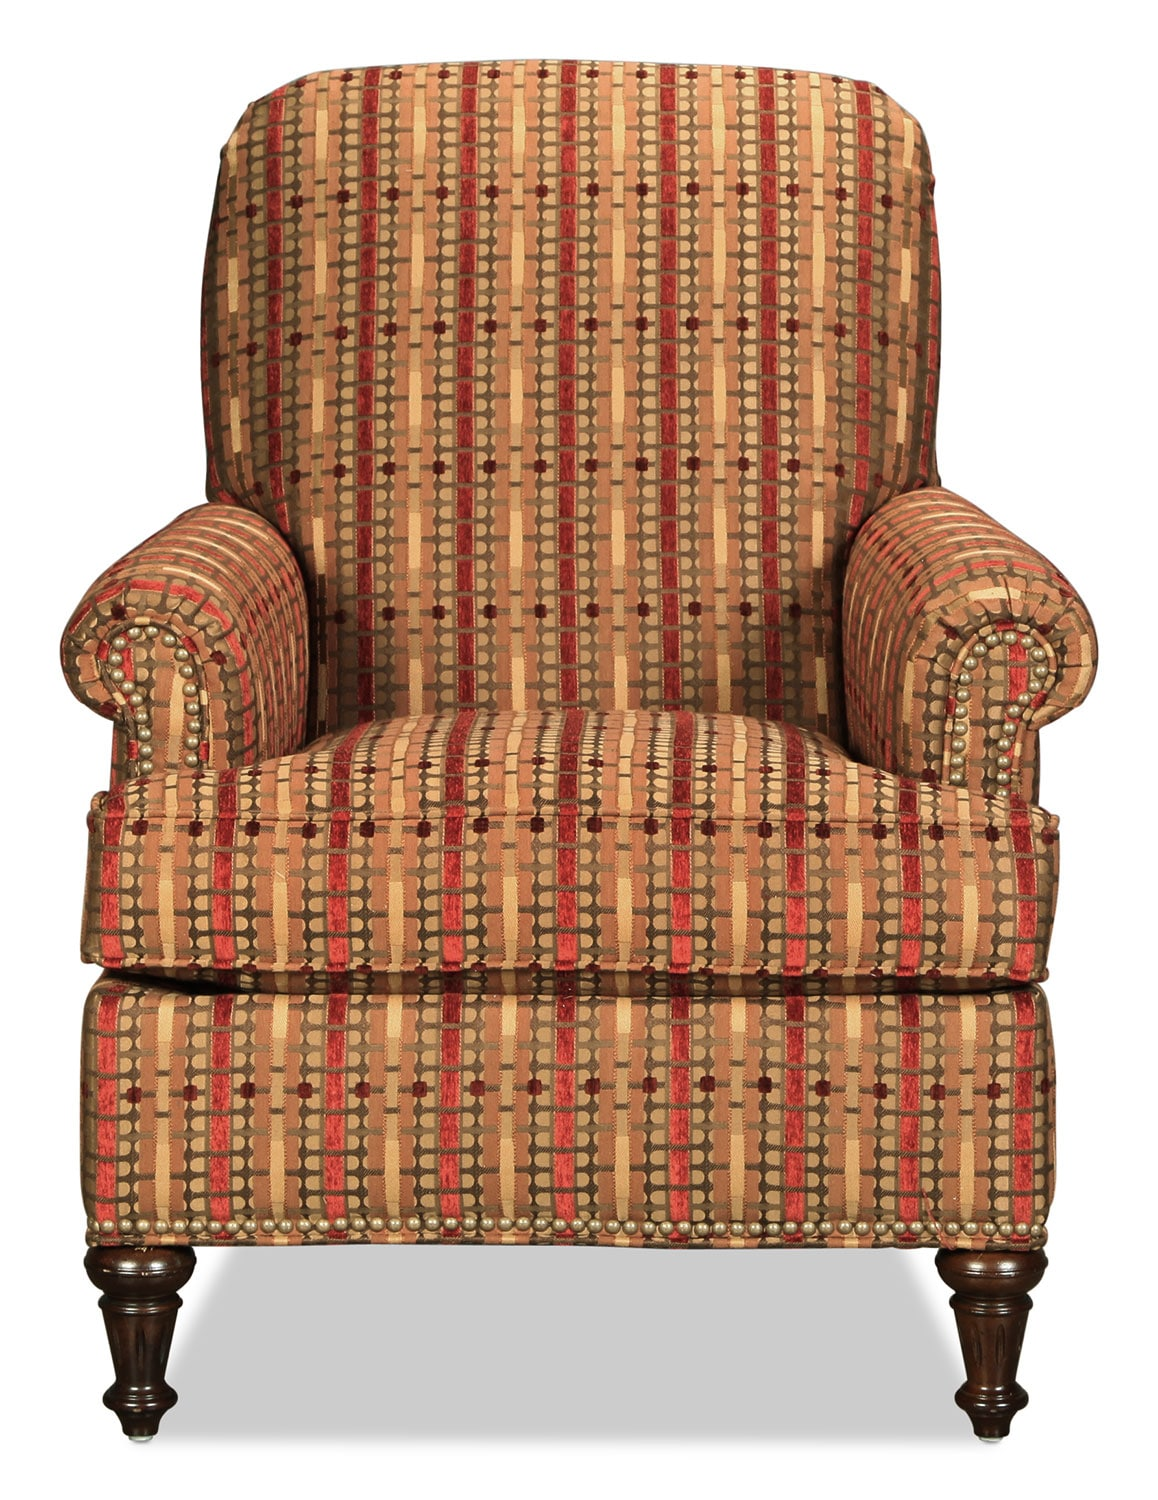 Sloan Accent Chair - Striped